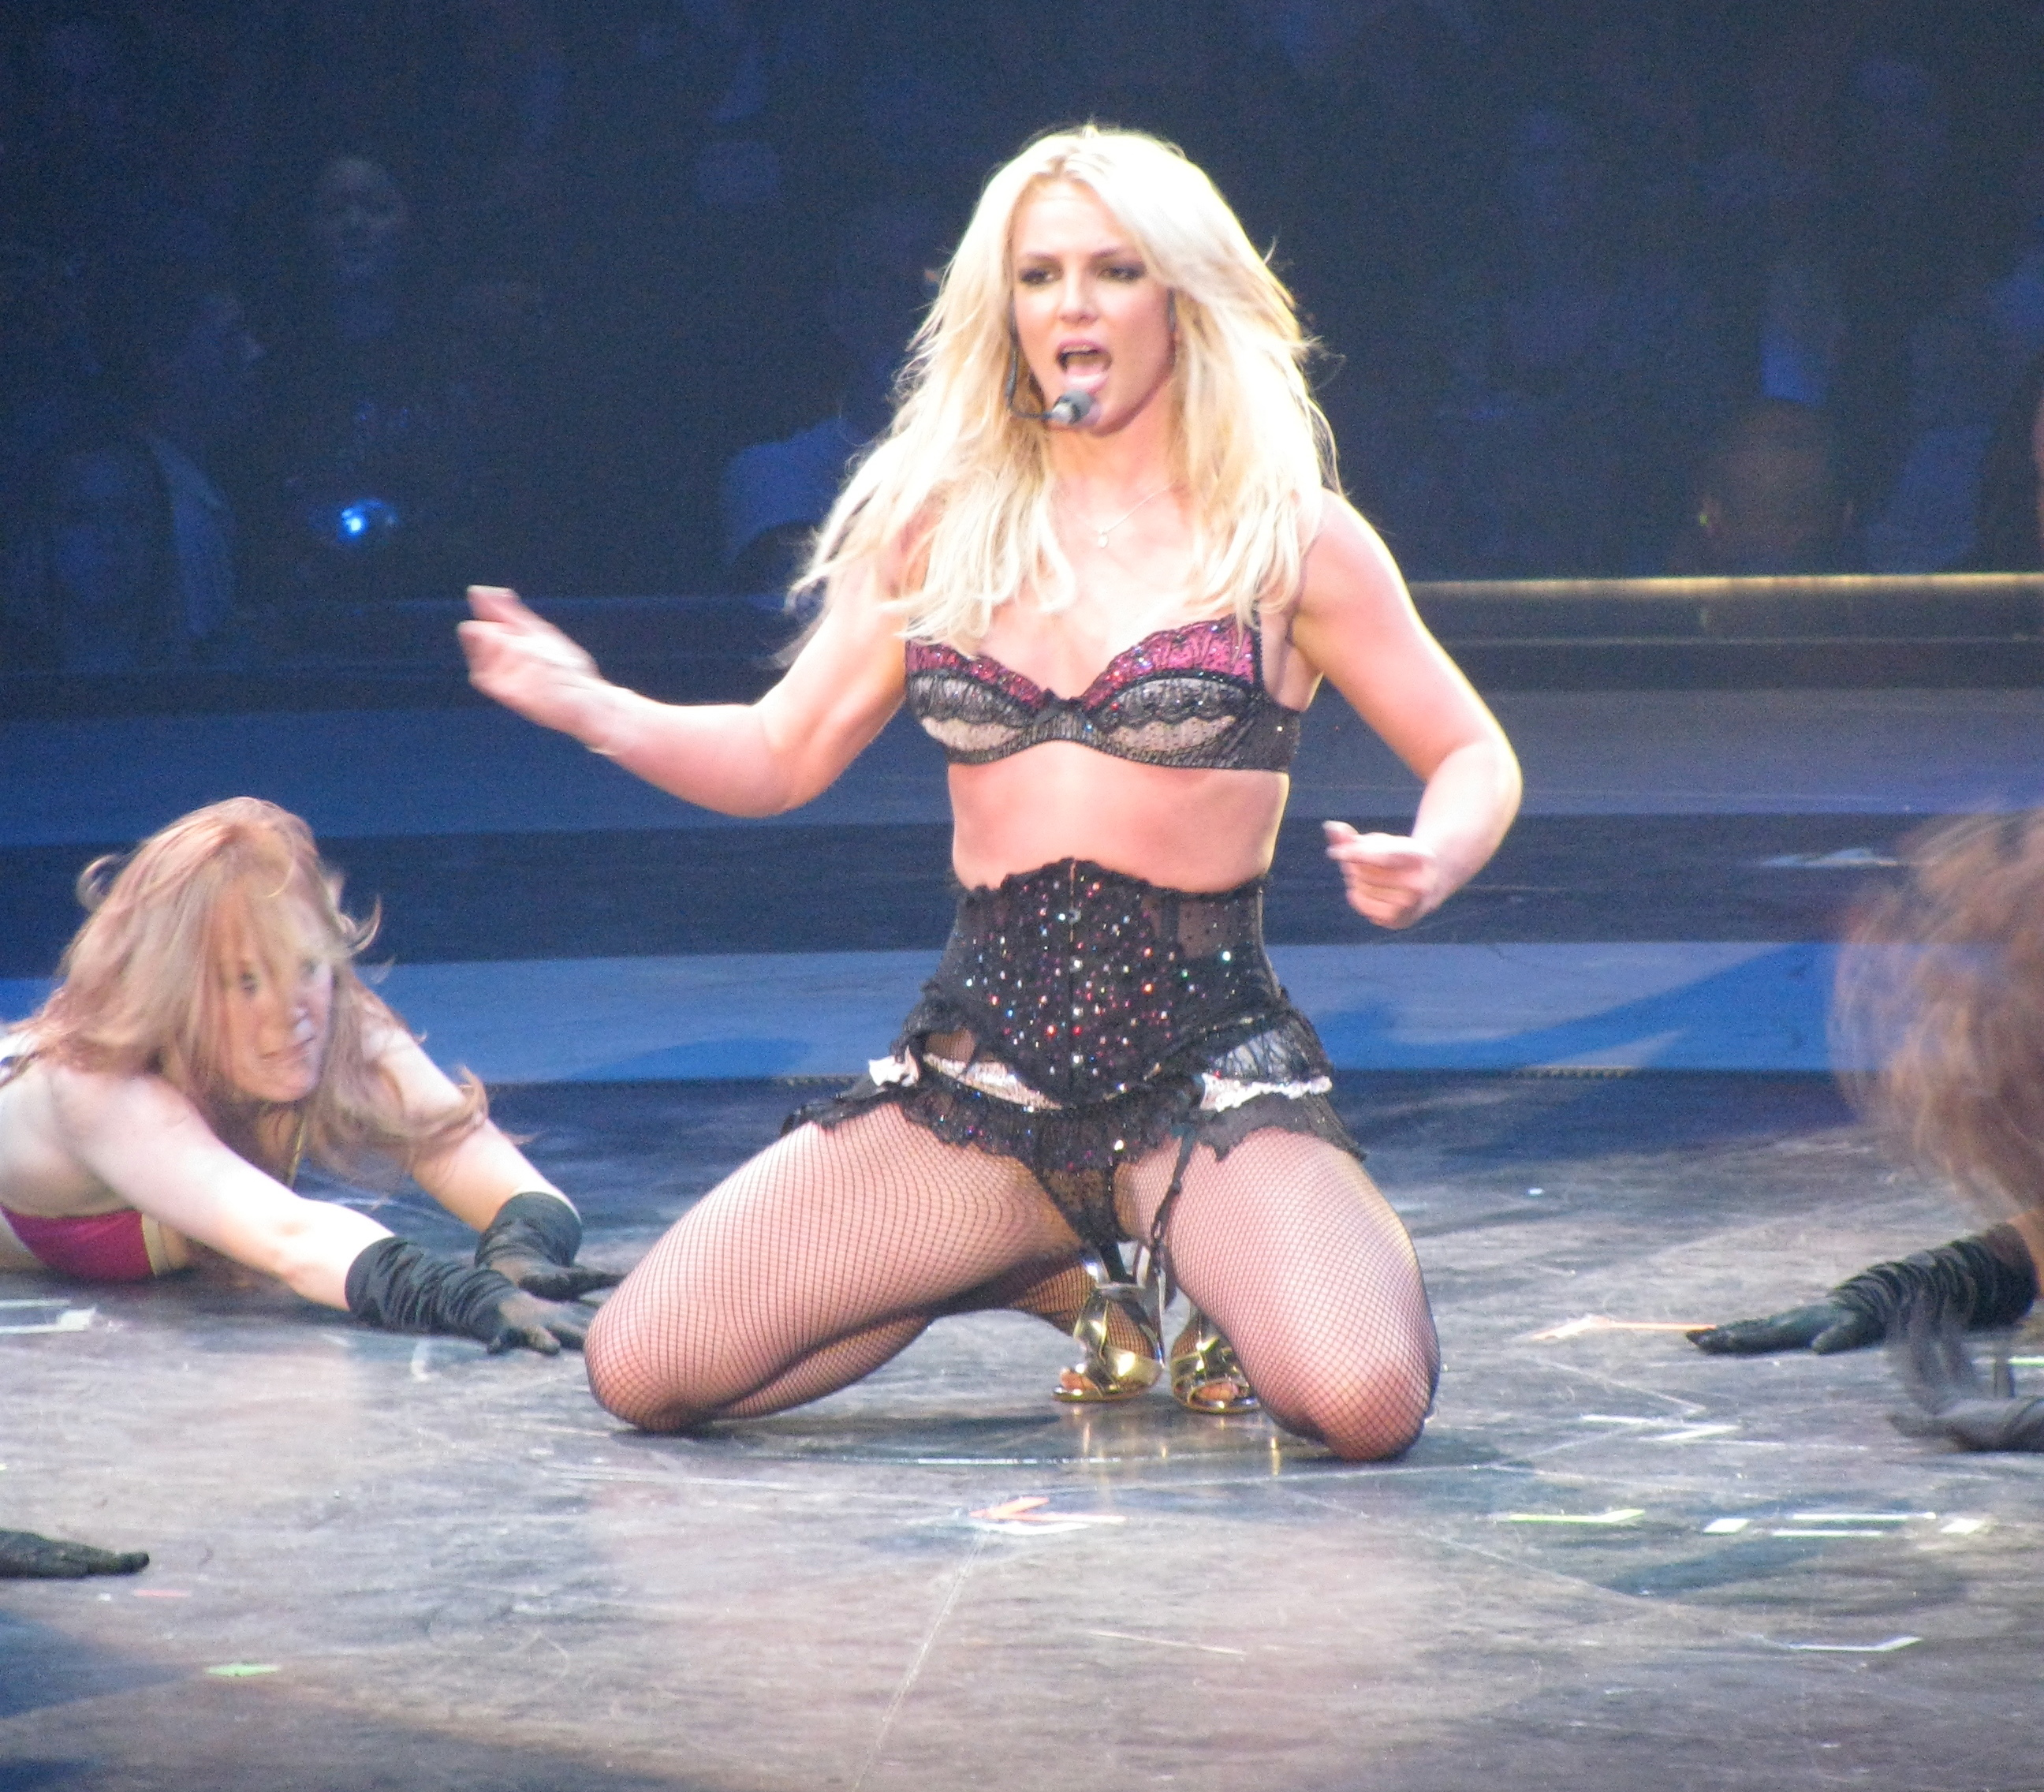 Good, Britney spears hot body can